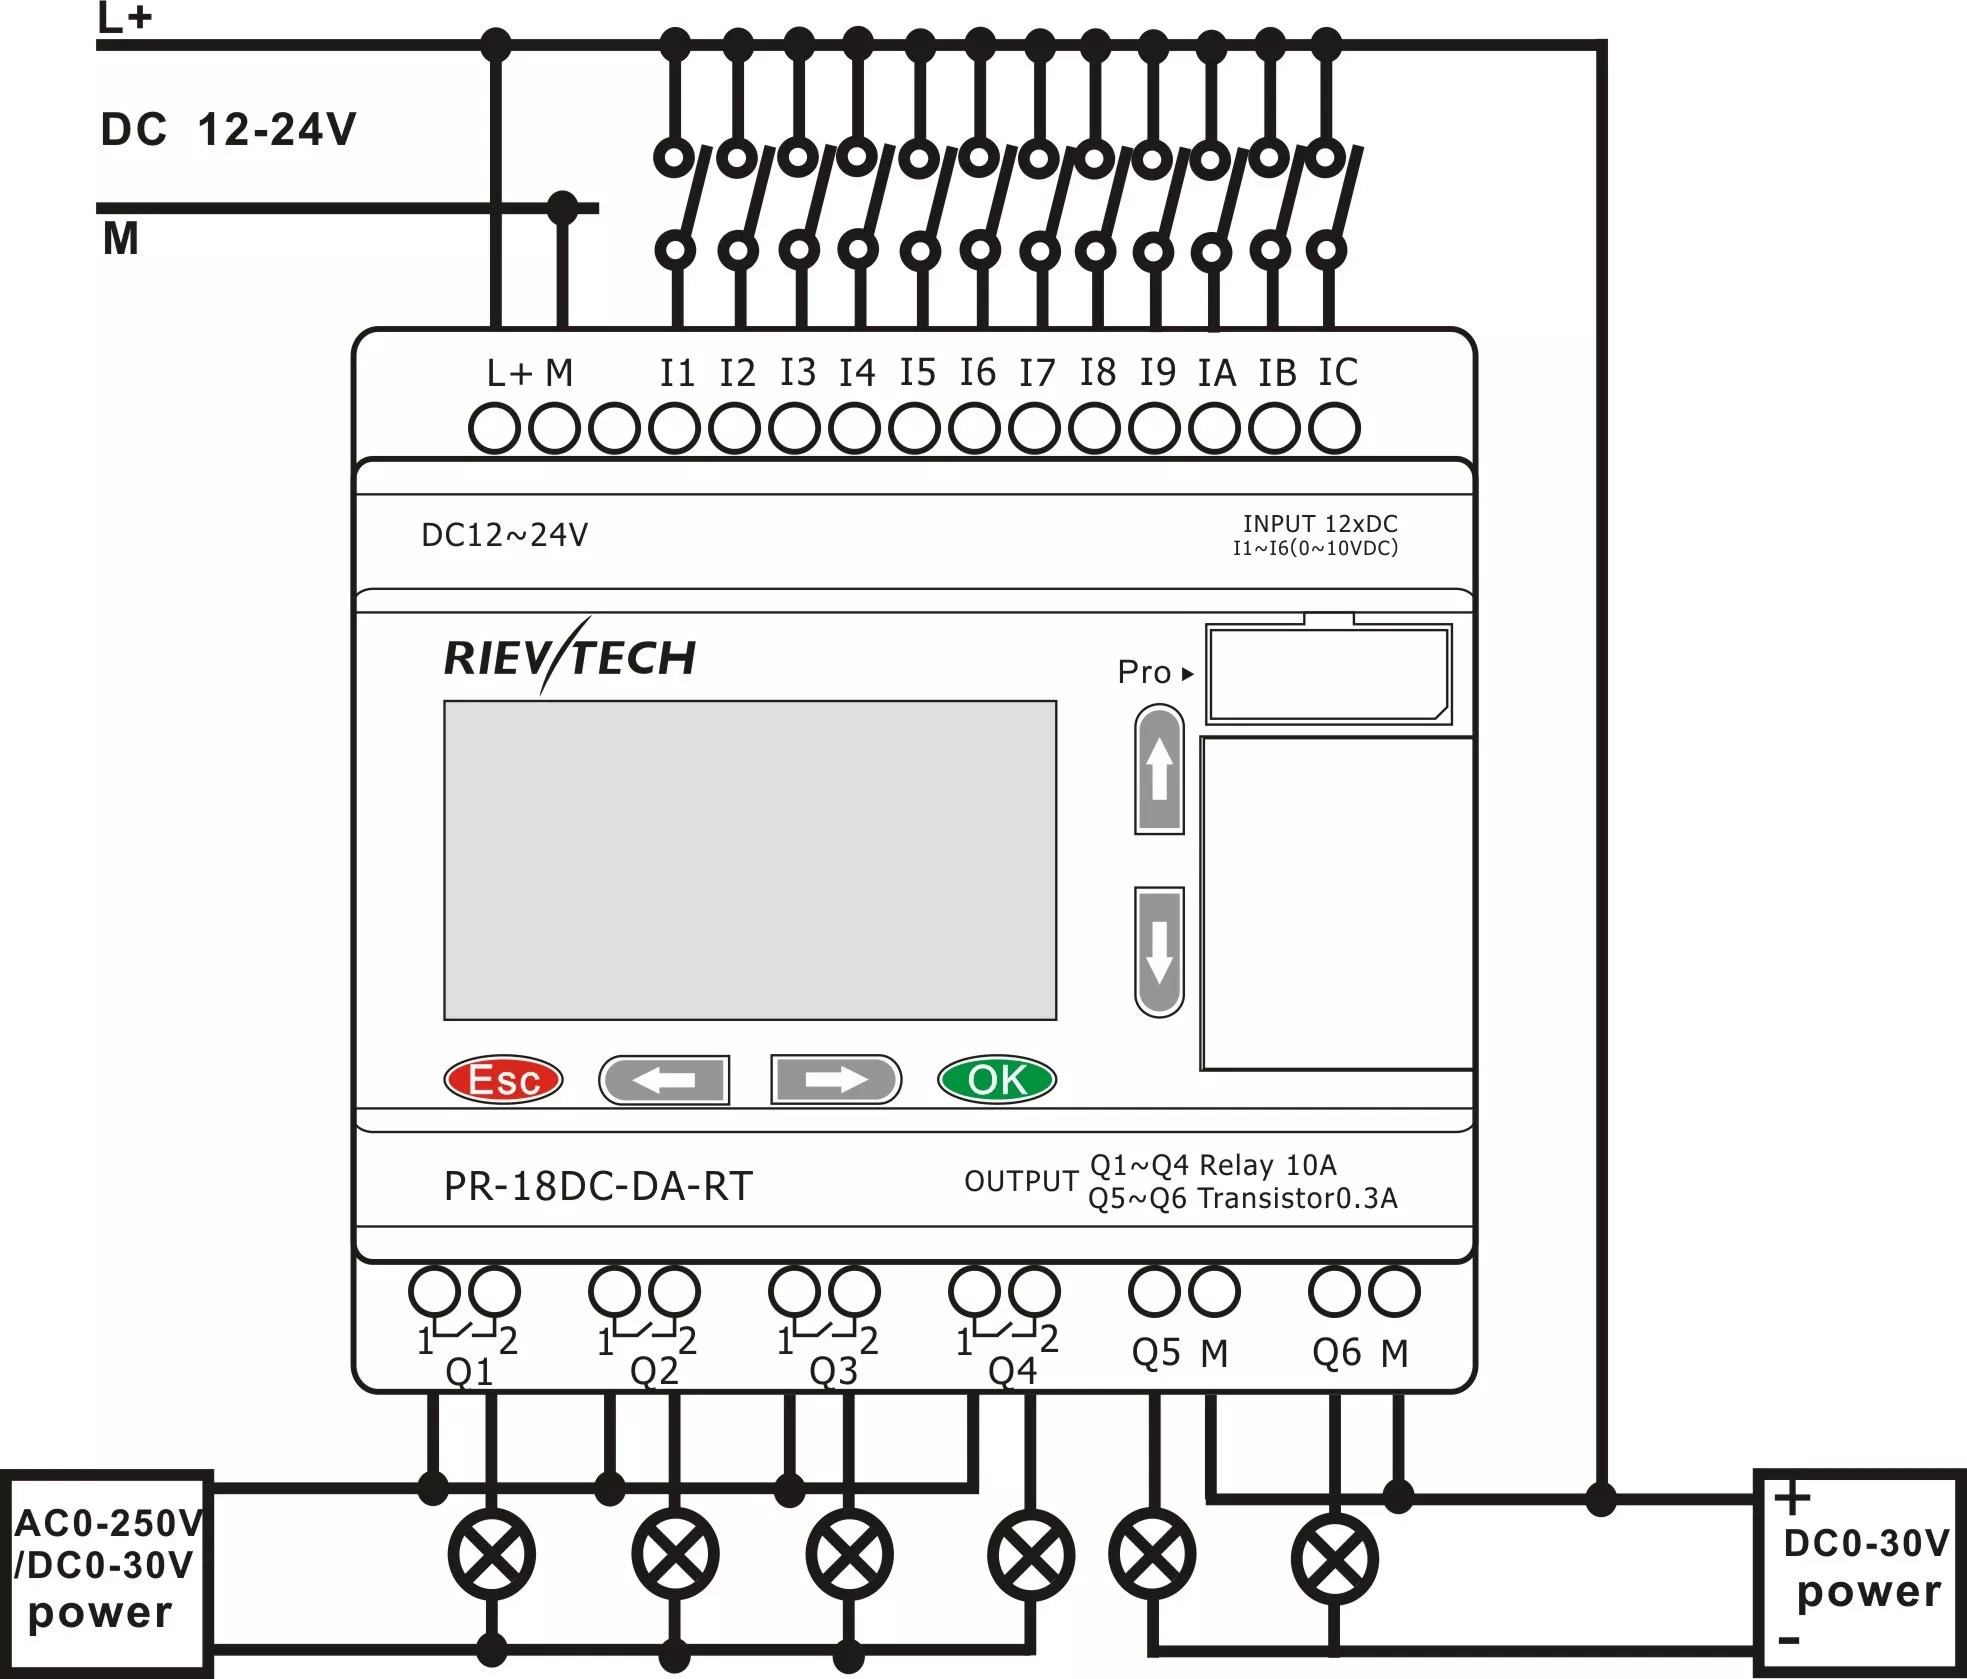 mitsubishi plc wiring diagram external frog omron cable image of a and hernes